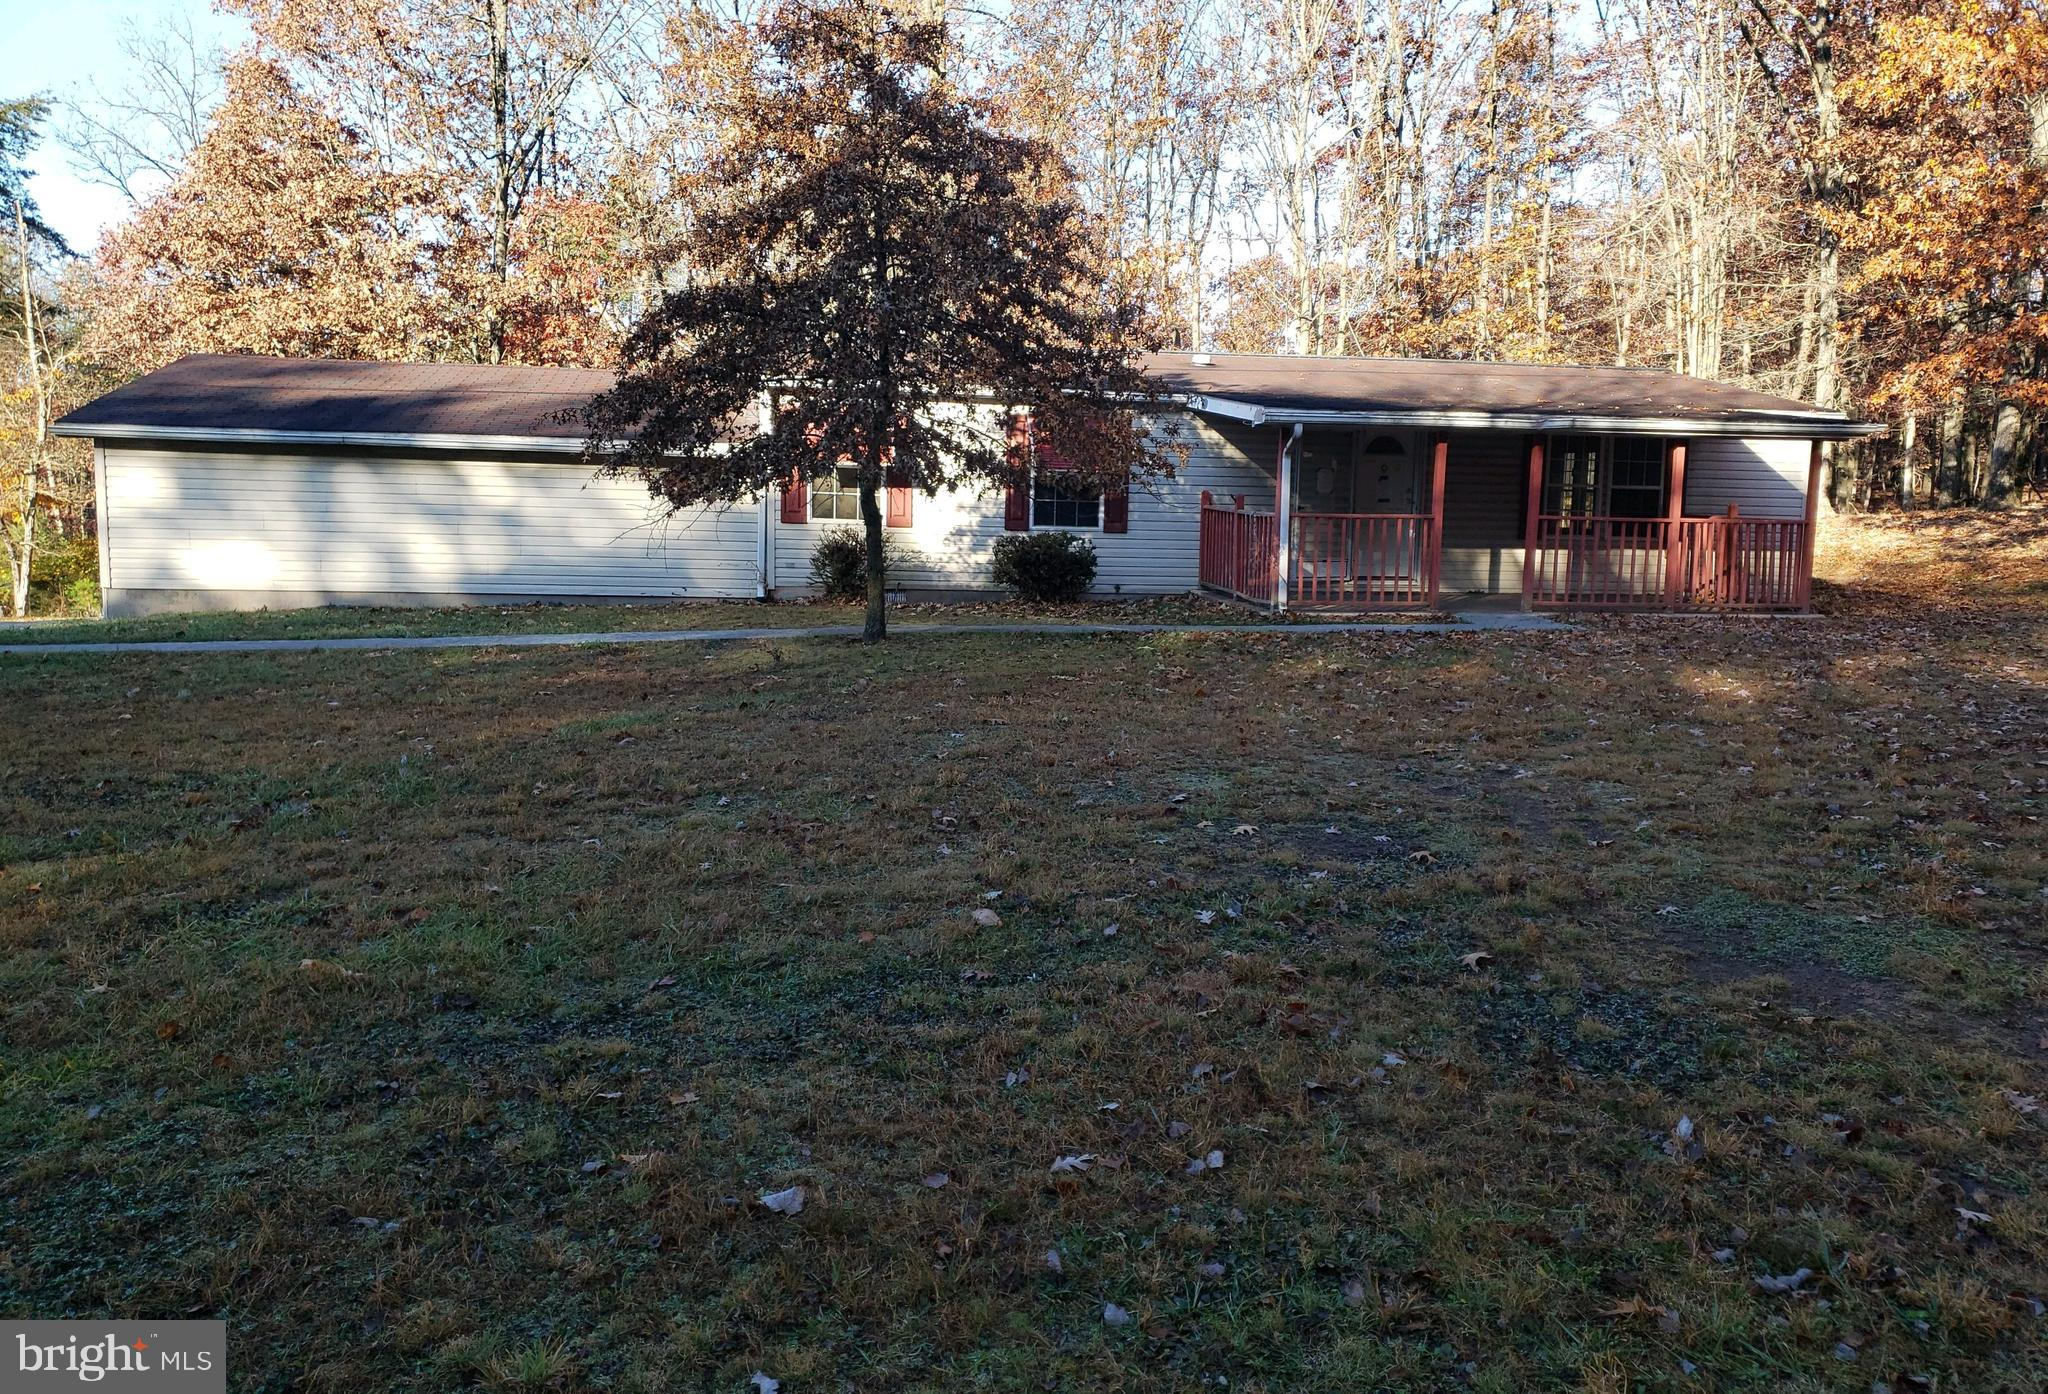 Ranch style home sits on approx. 1.07ac +/- in Berkeley Springs. Home features 3 BRs, 1 FB, covered front porch and attached 2 car garage.